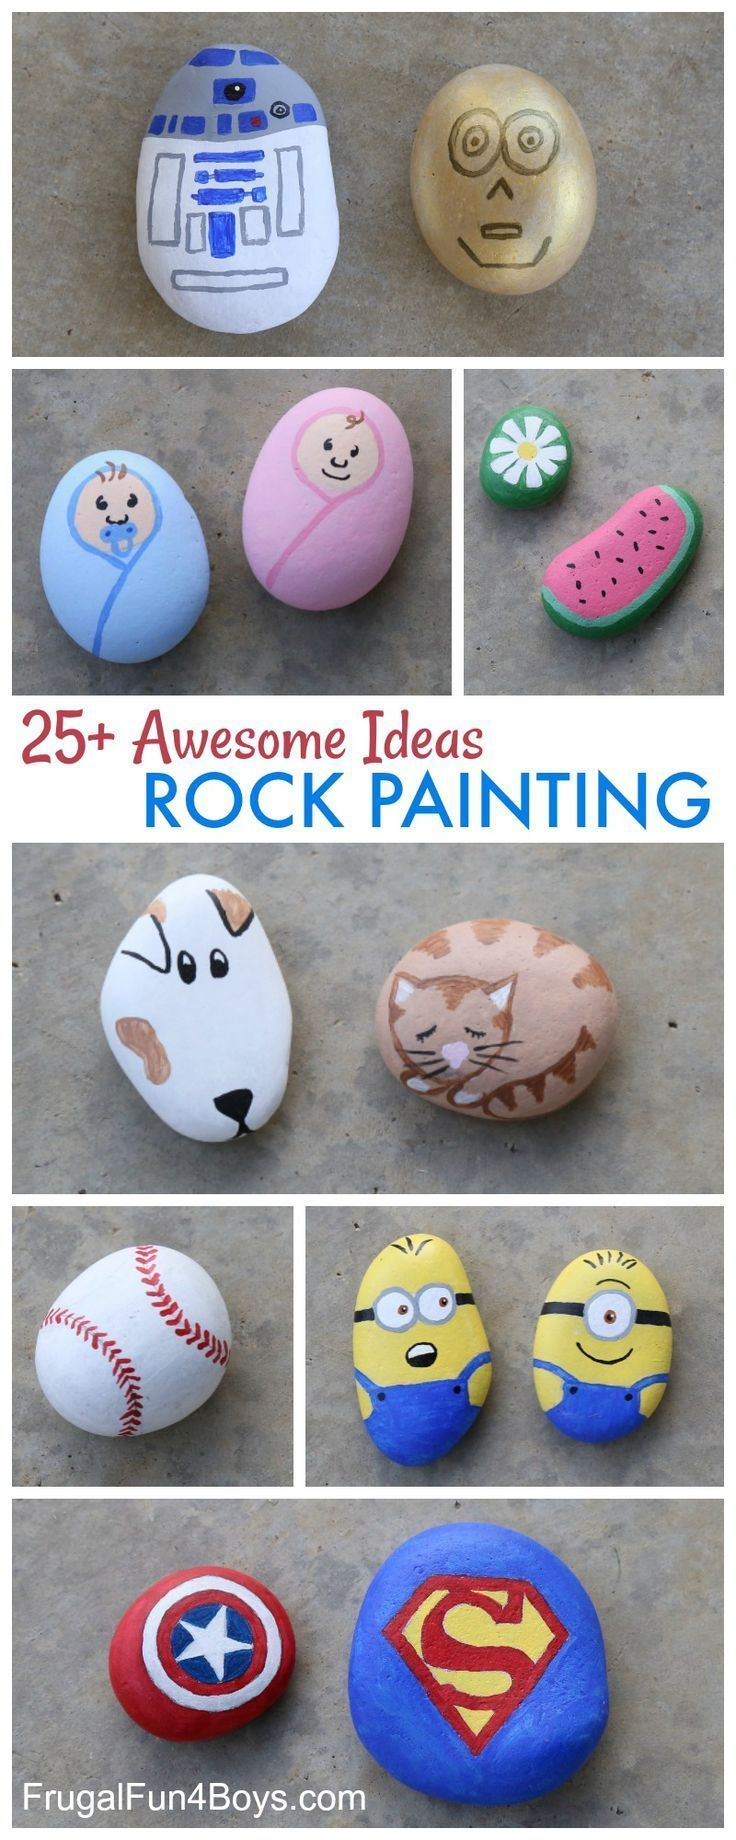 25 Awesome Rock Painting Ideas Rock Crafts For Kids Design Inspiration Awesome Boys Frugal Fun Girls Ide In 2020 Painted Rocks Kids Painted Rocks Rock Crafts